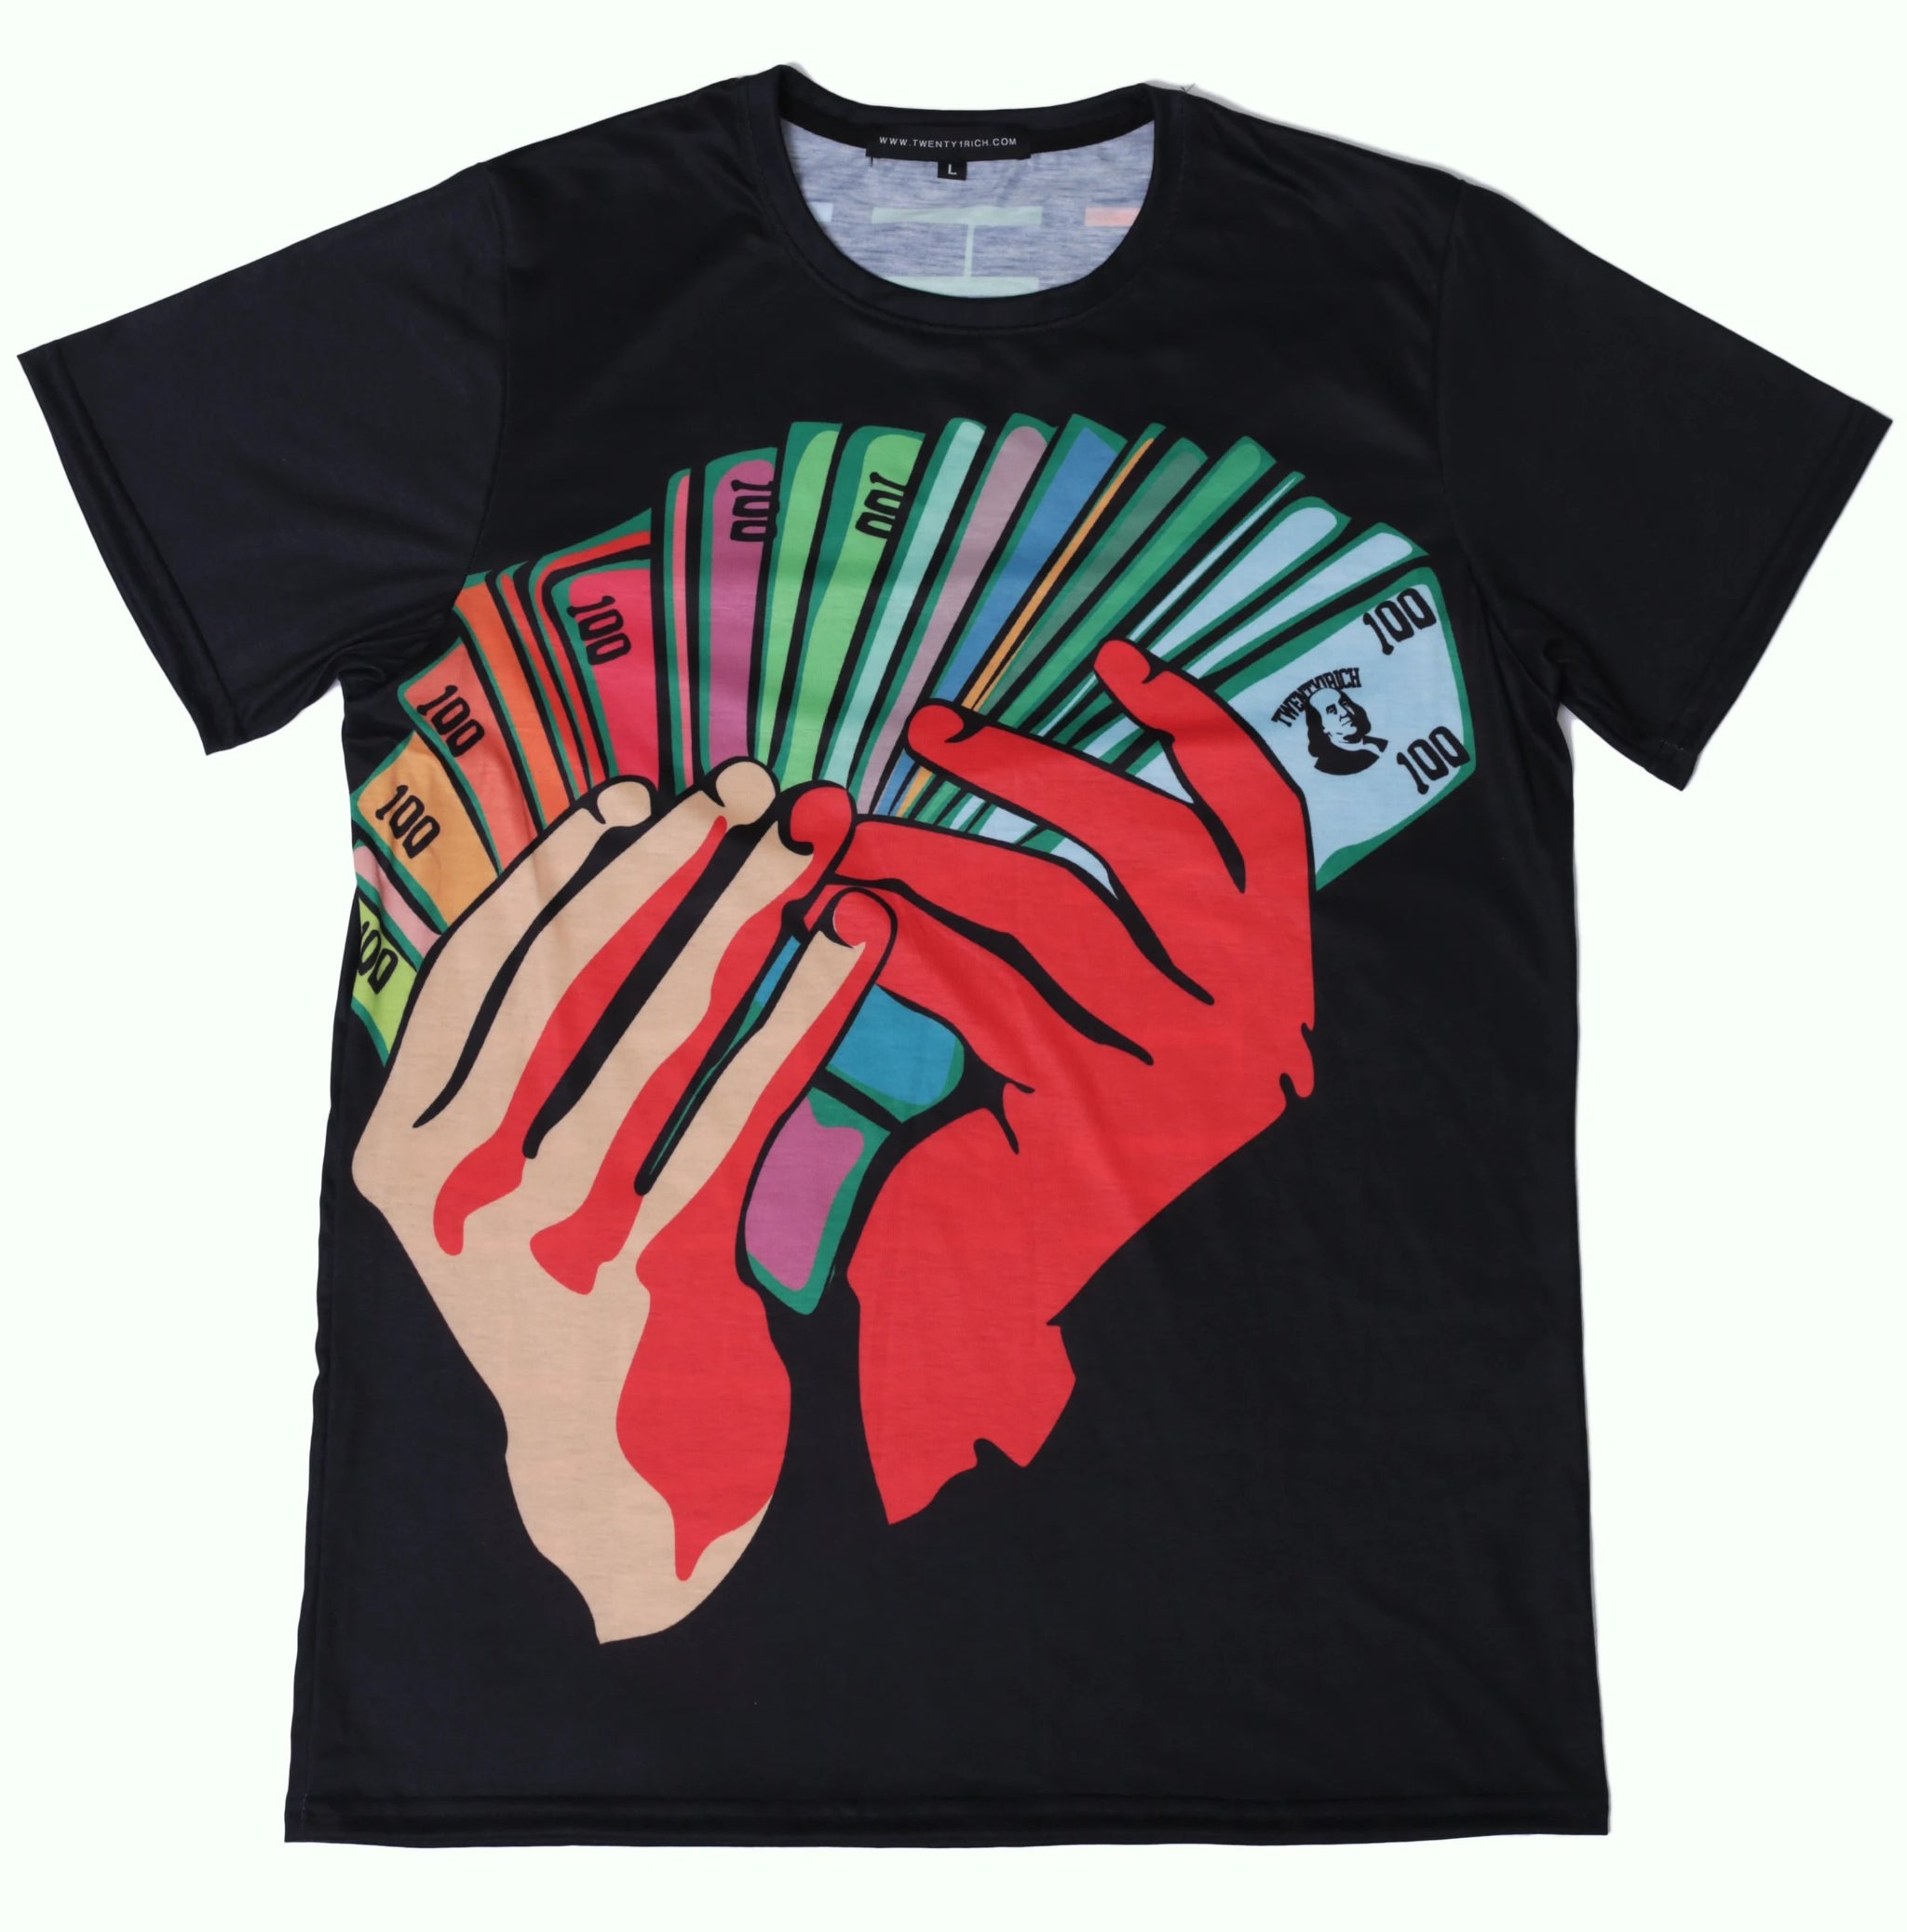 Money Fan Black Crew Neck Tee by Twenty1Rich